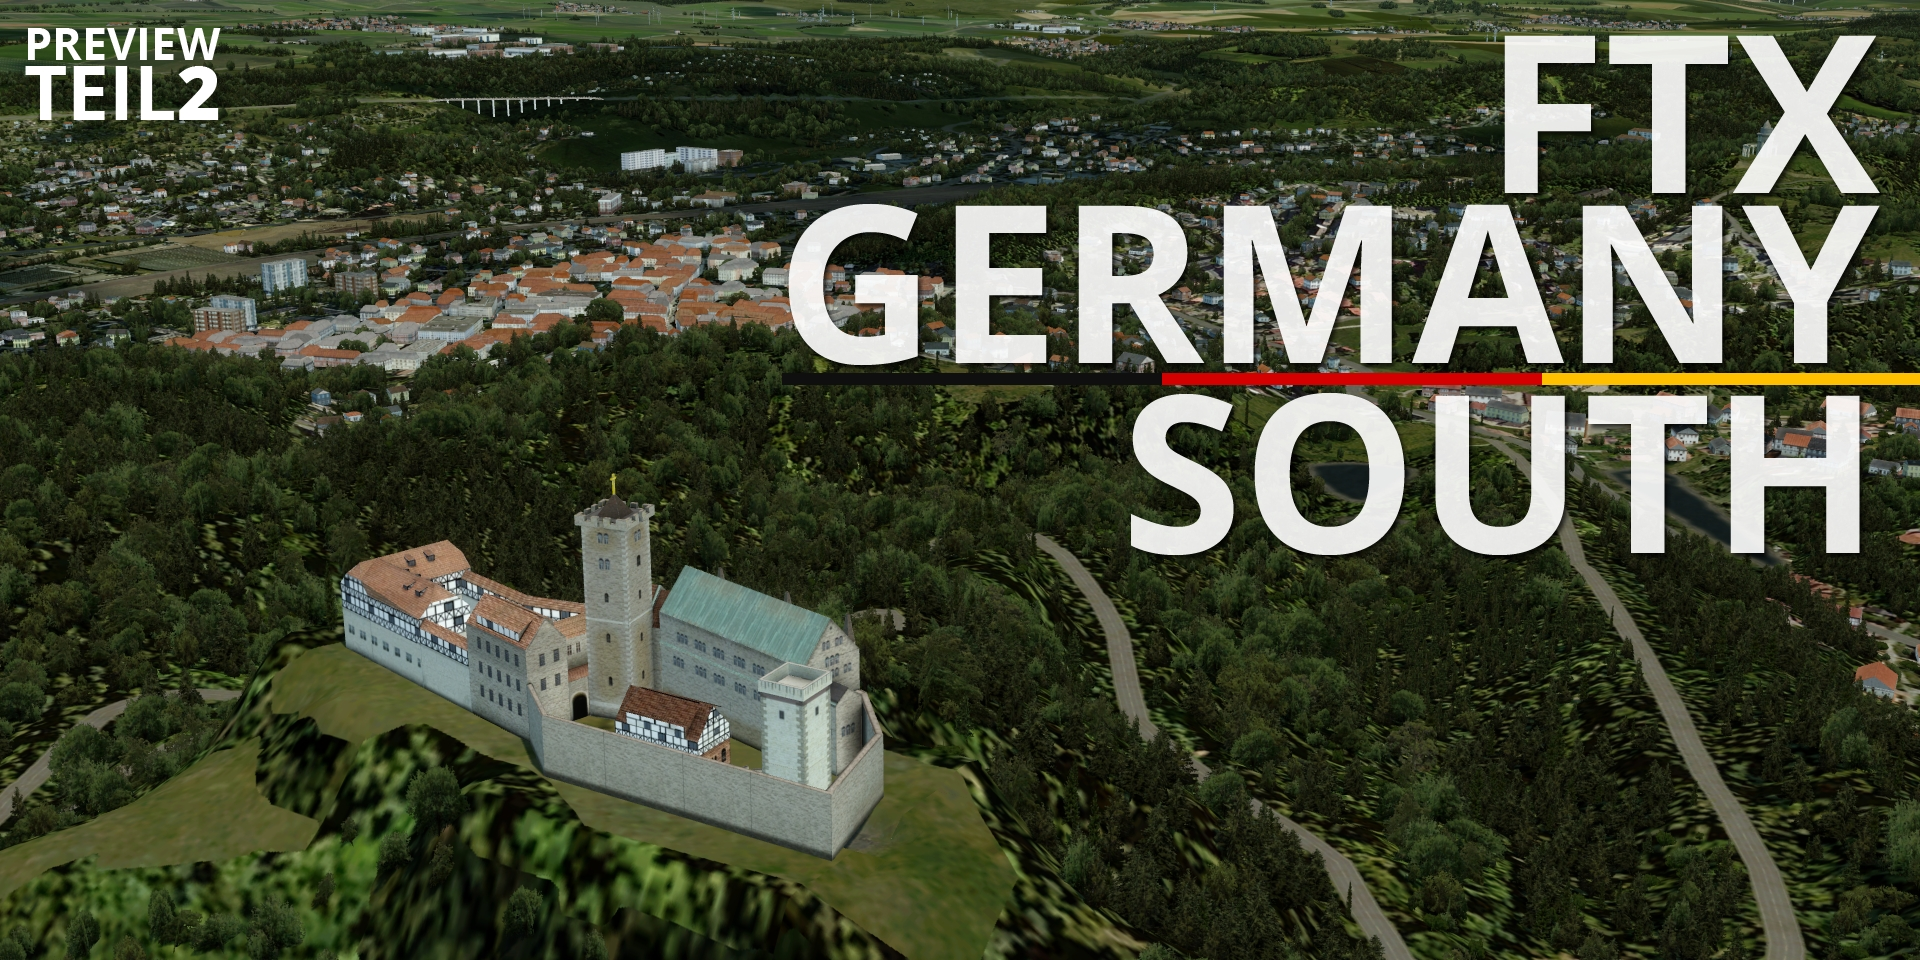 ftx-germany-south-preview-teil2